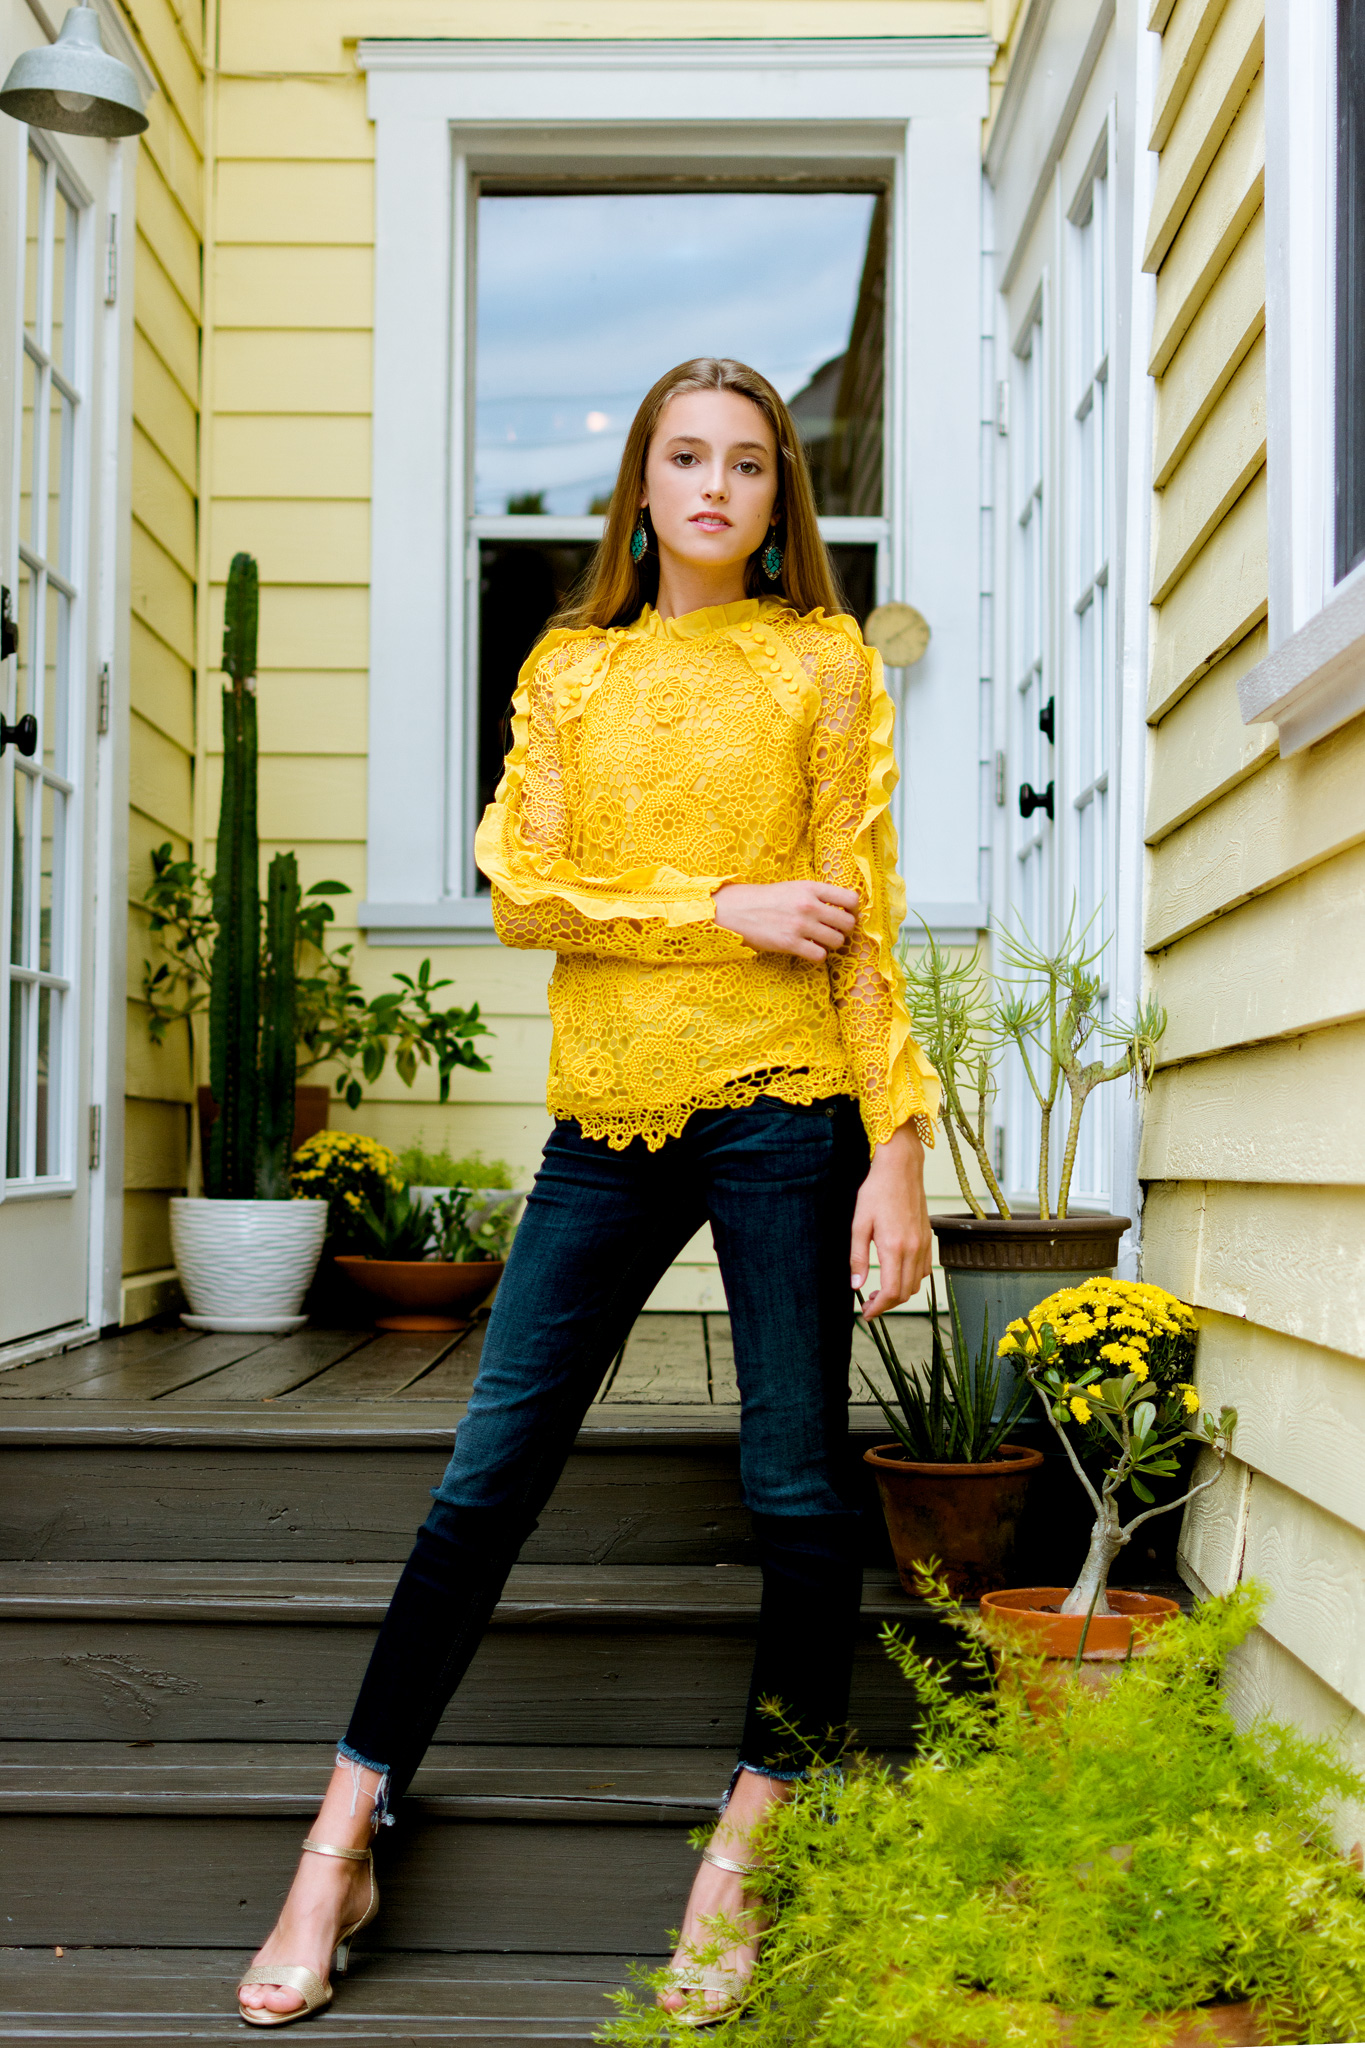 Fall fashion shoot with all yellow background, editorial fashion photographer Carlie Chew